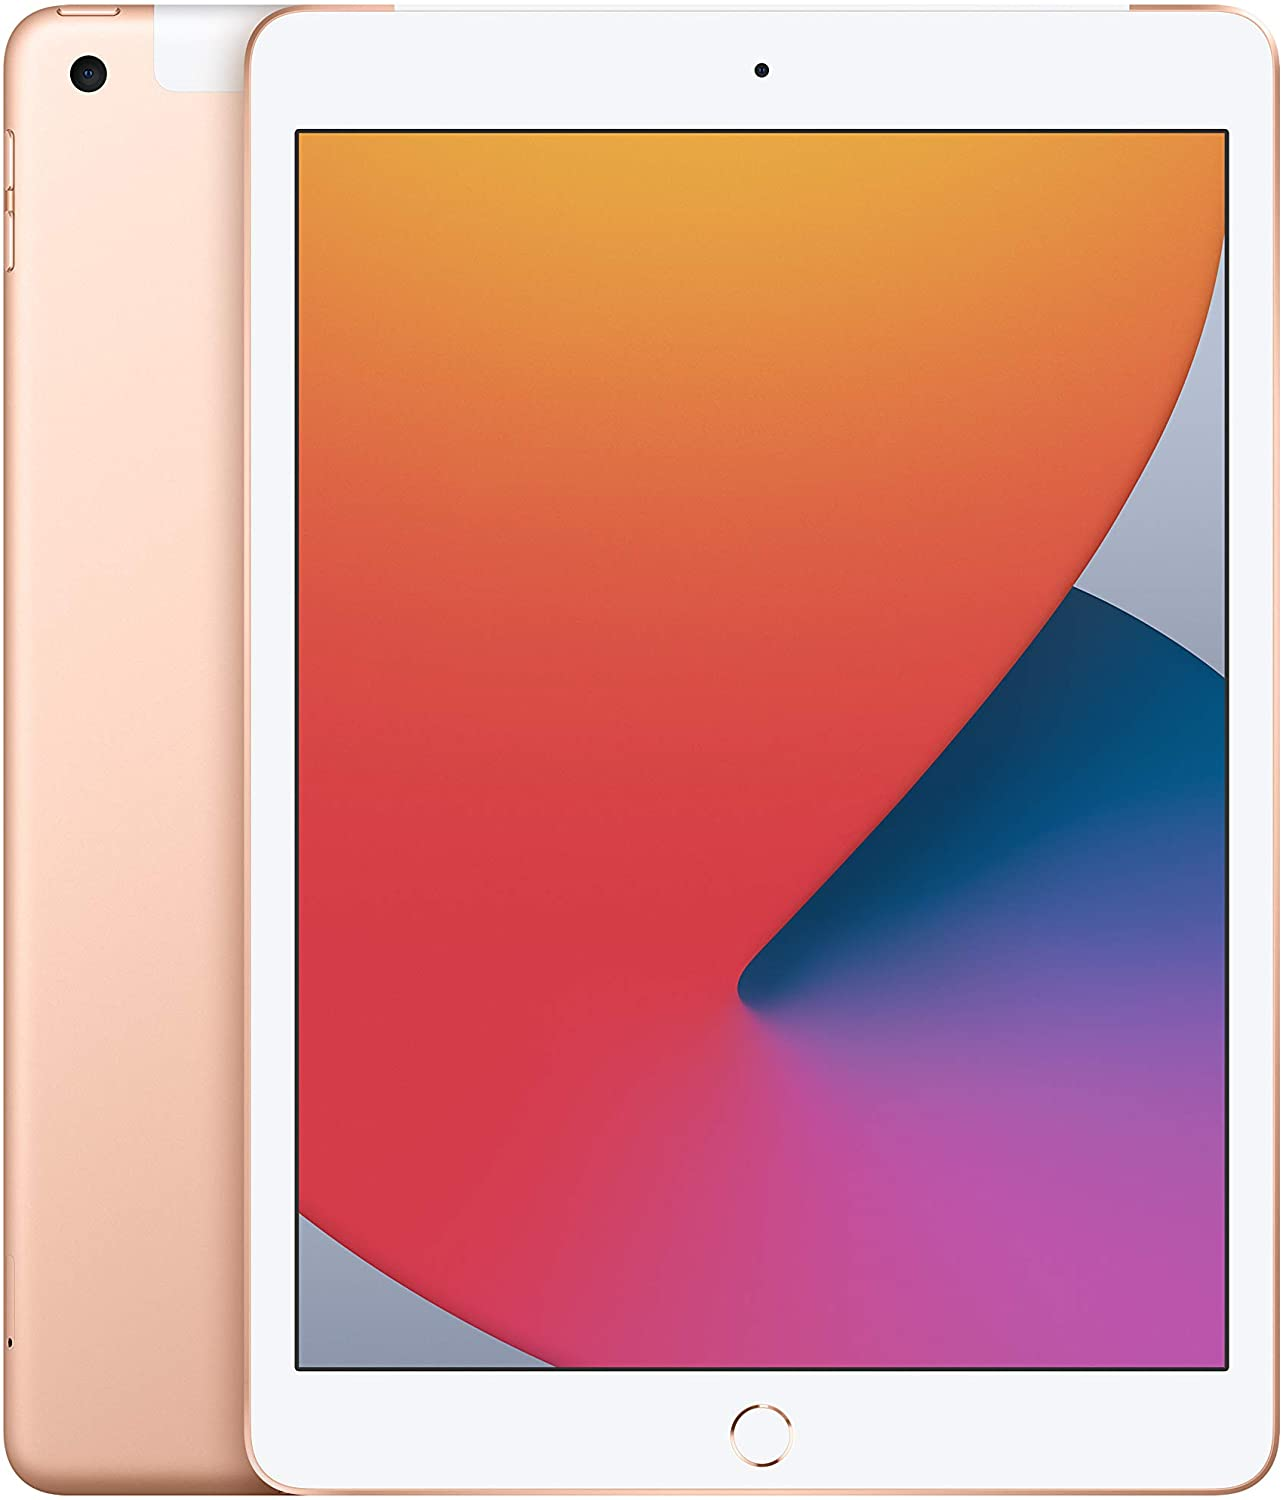 New Apple iPad (10.2-inch, Wi-Fi + Cellular, 128GB) - Gold (Latest Model, 8th Generation)